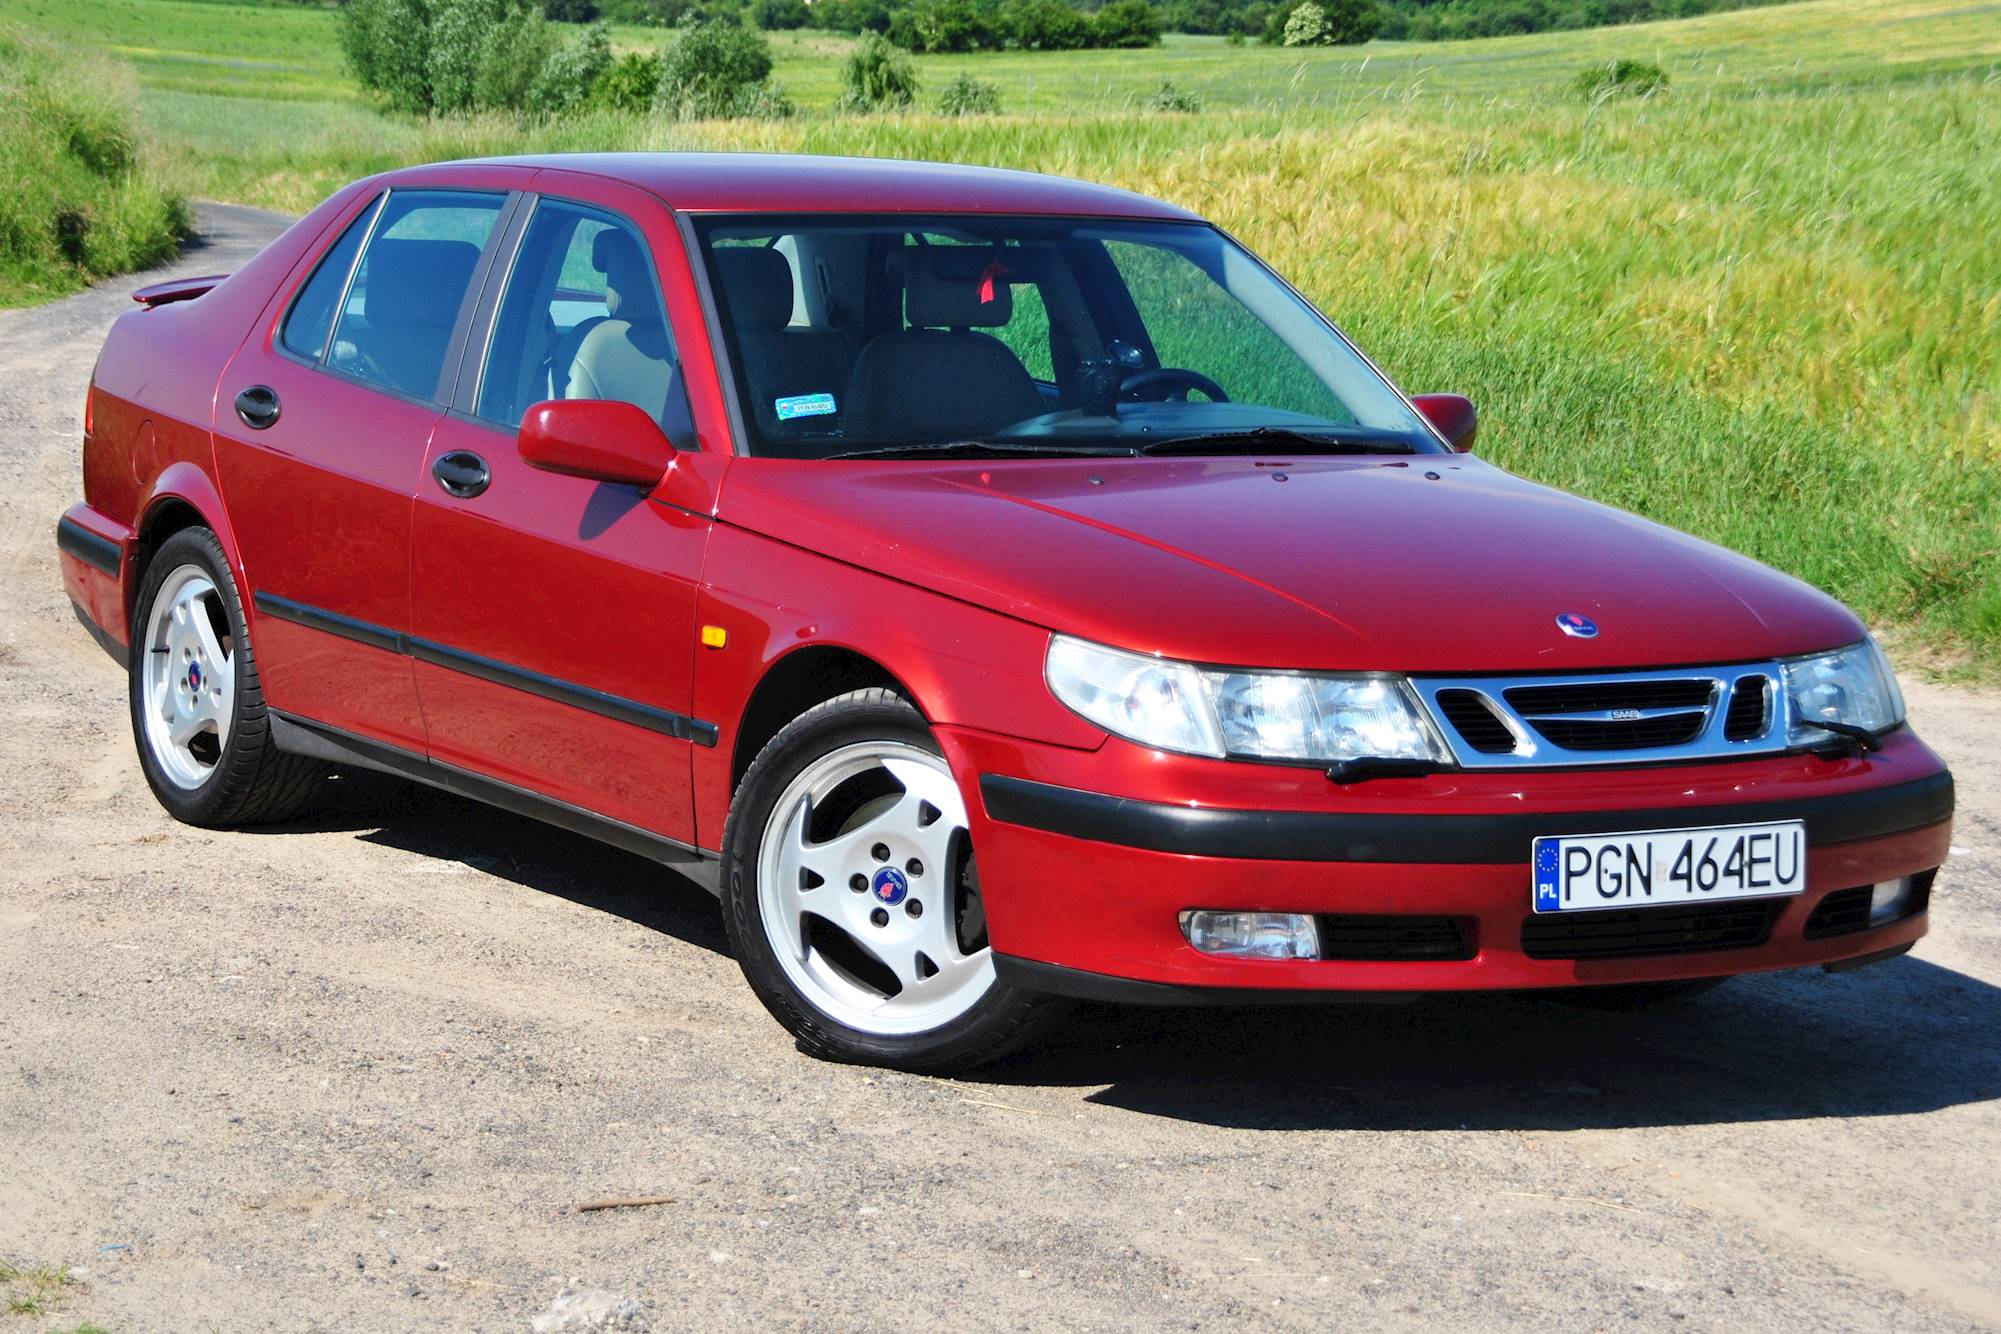 ... File:Saab 9-5 I SE 1998 front.JPG - Wikimedia Commons 2000 ...